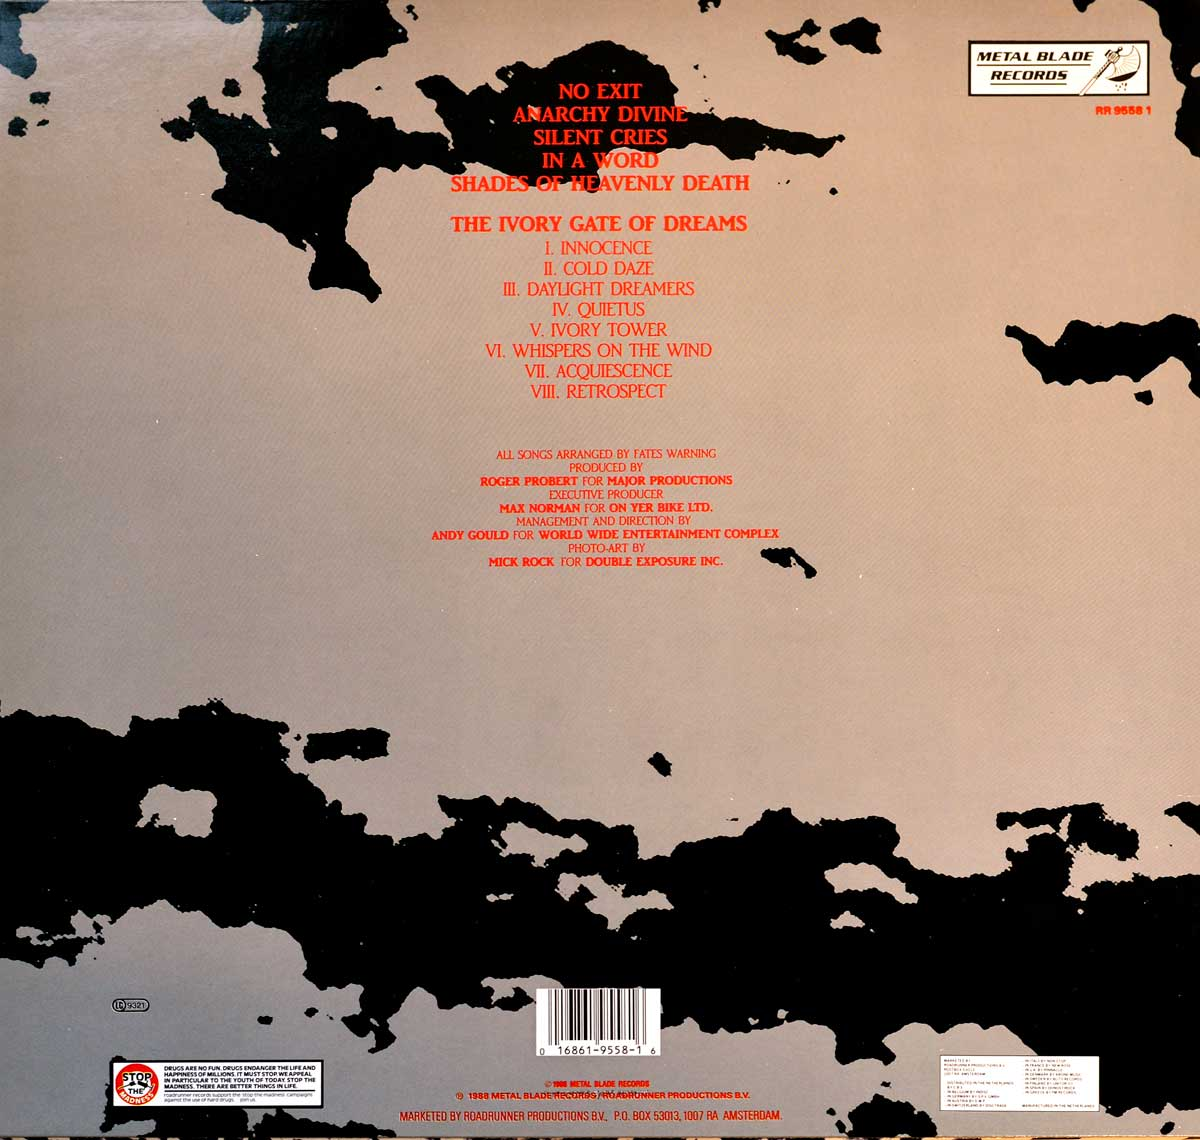 High Resolution Photo Album Back Cover of FATES WARNING No Exit https://vinyl-records.nl